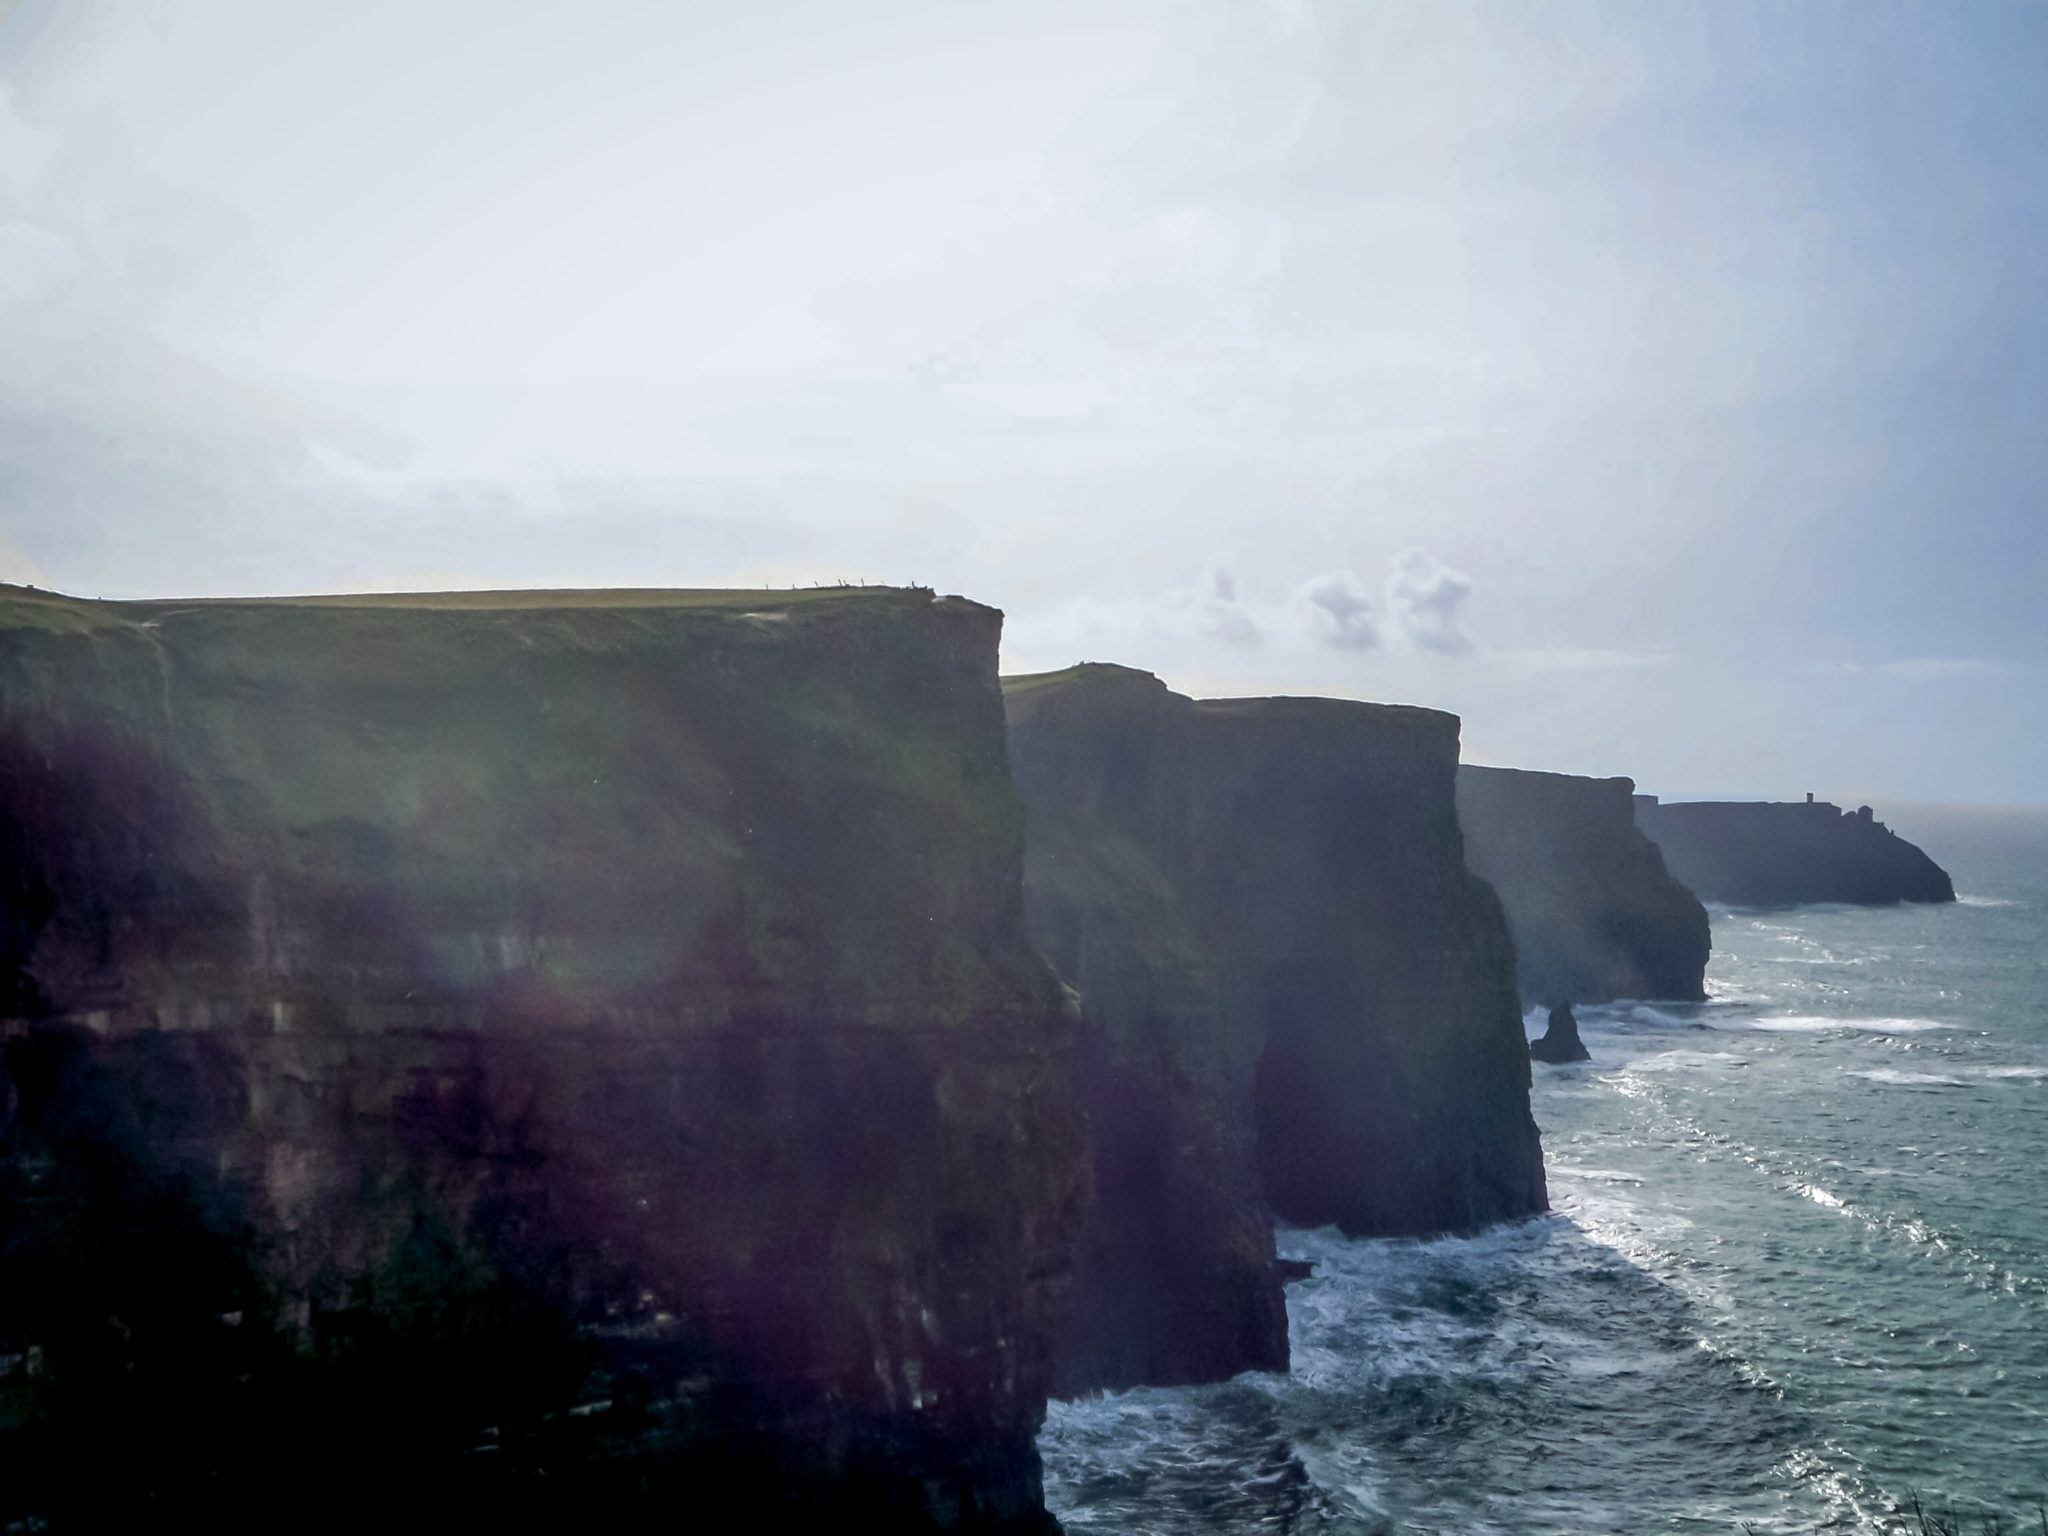 The cliffs drop straight into the ocean